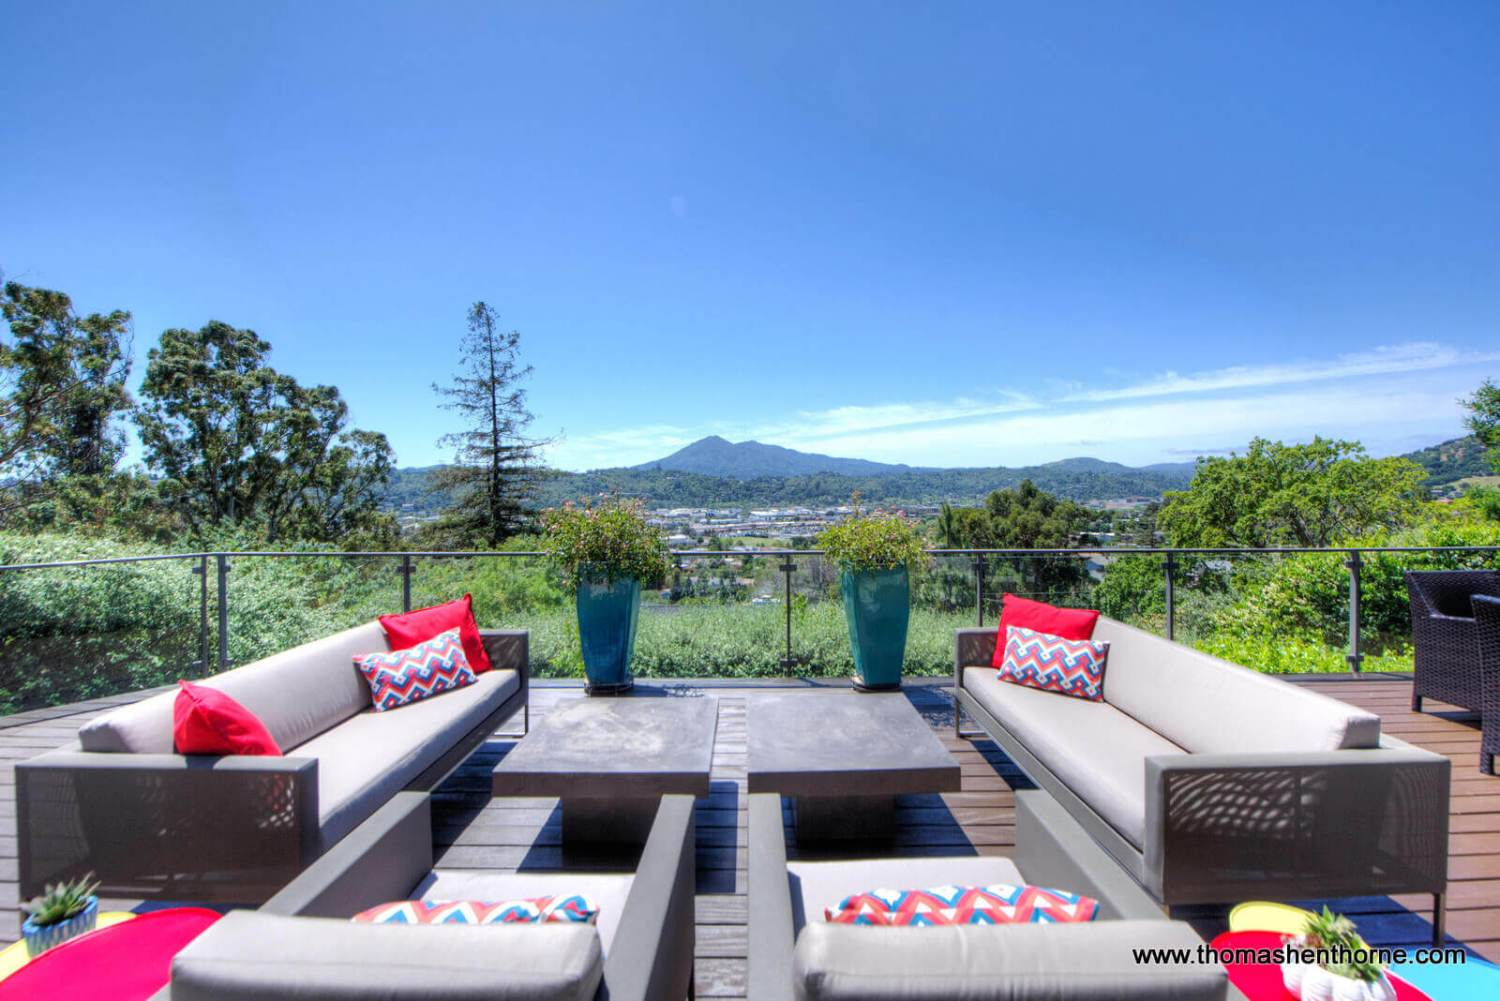 Outdoor furniture on deck with view of Mt. Tamalpais